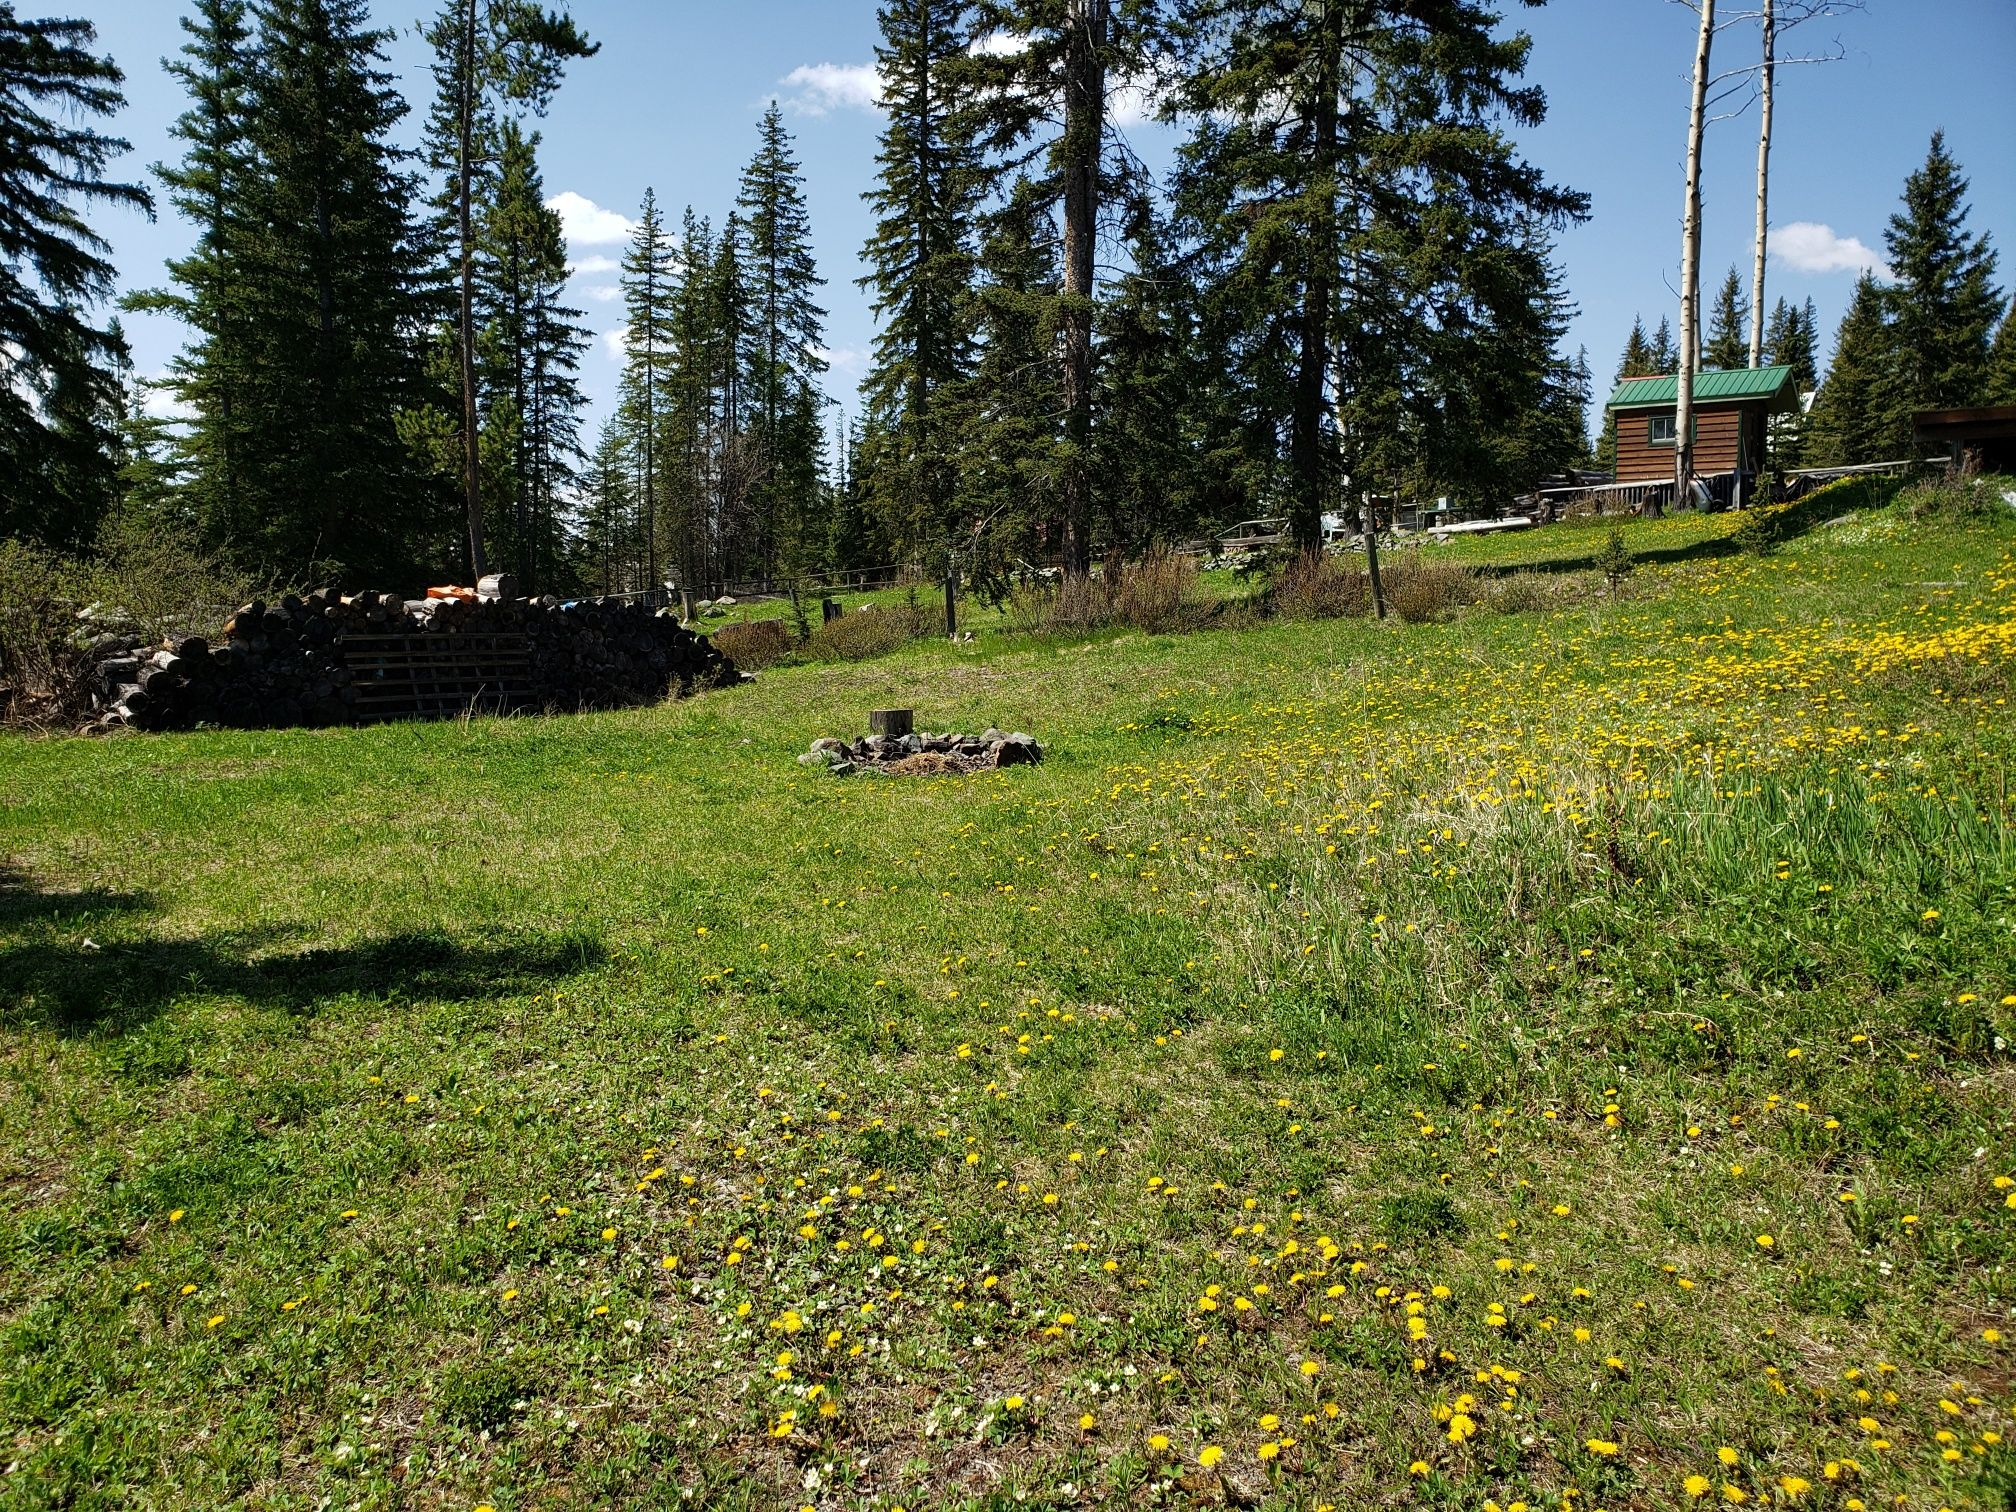 Photo 11: Photos: 4789 Atwater Road in : Logan Lake House for sale (Kamloops)  : MLS®# 157075